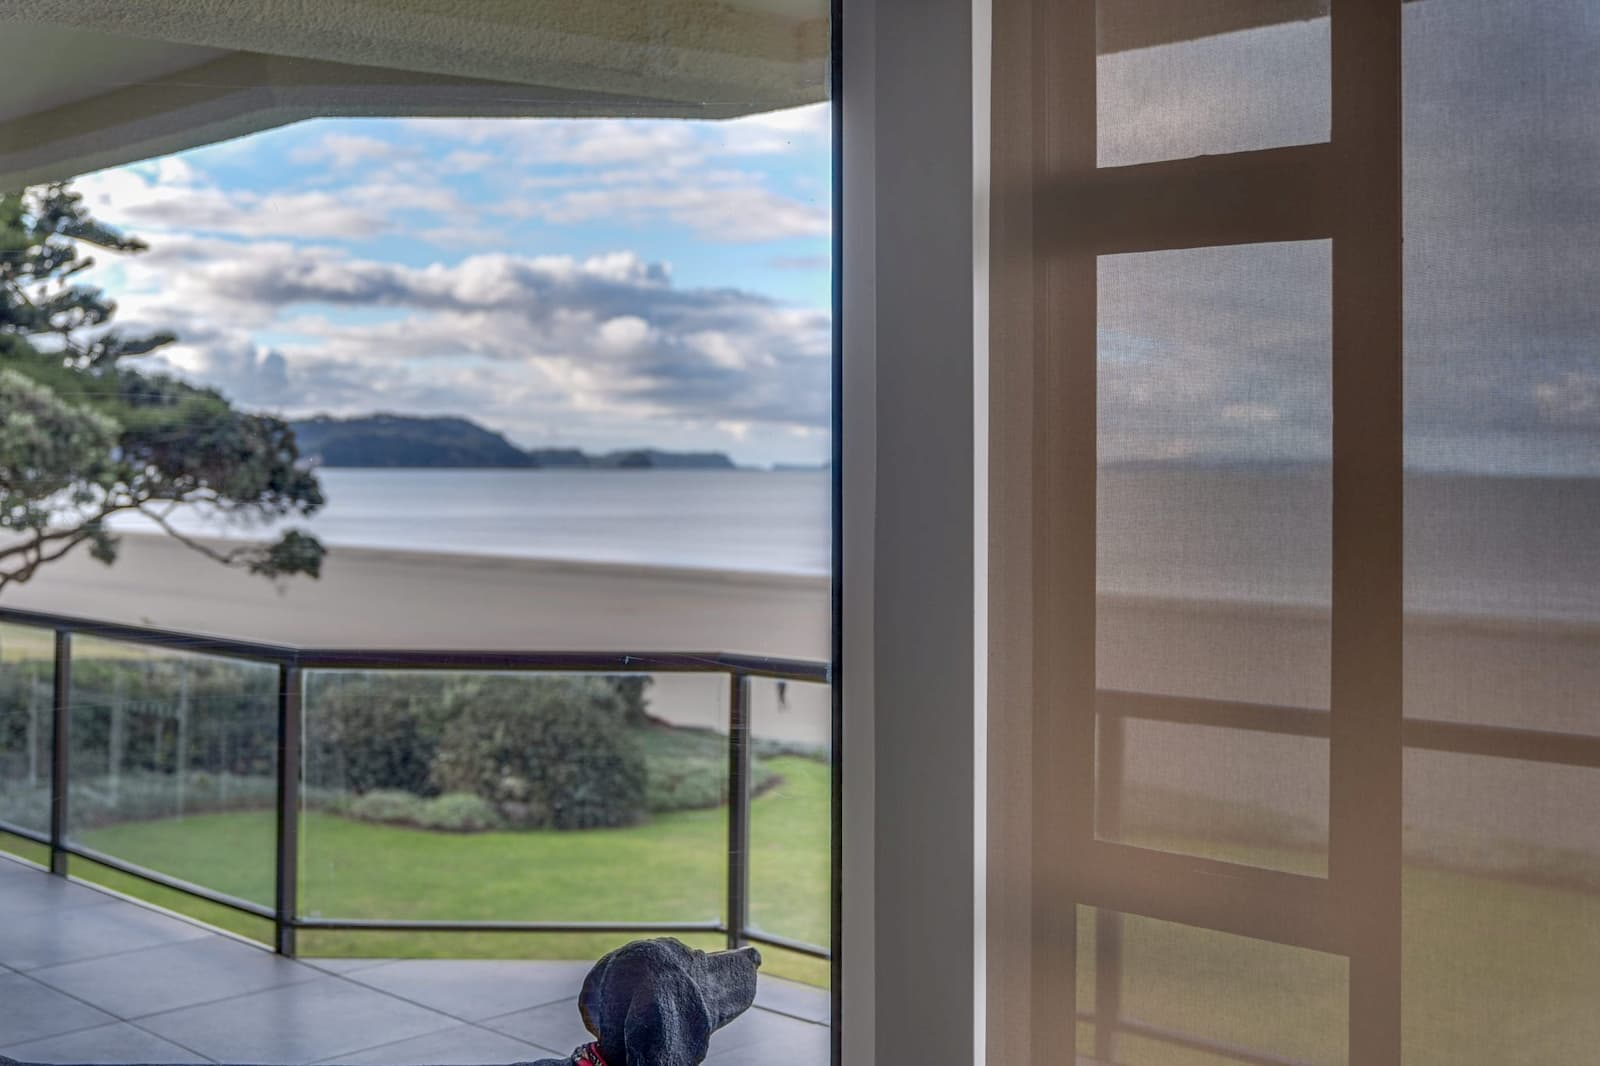 Window roller blind of balcony with a dog looking at the sea